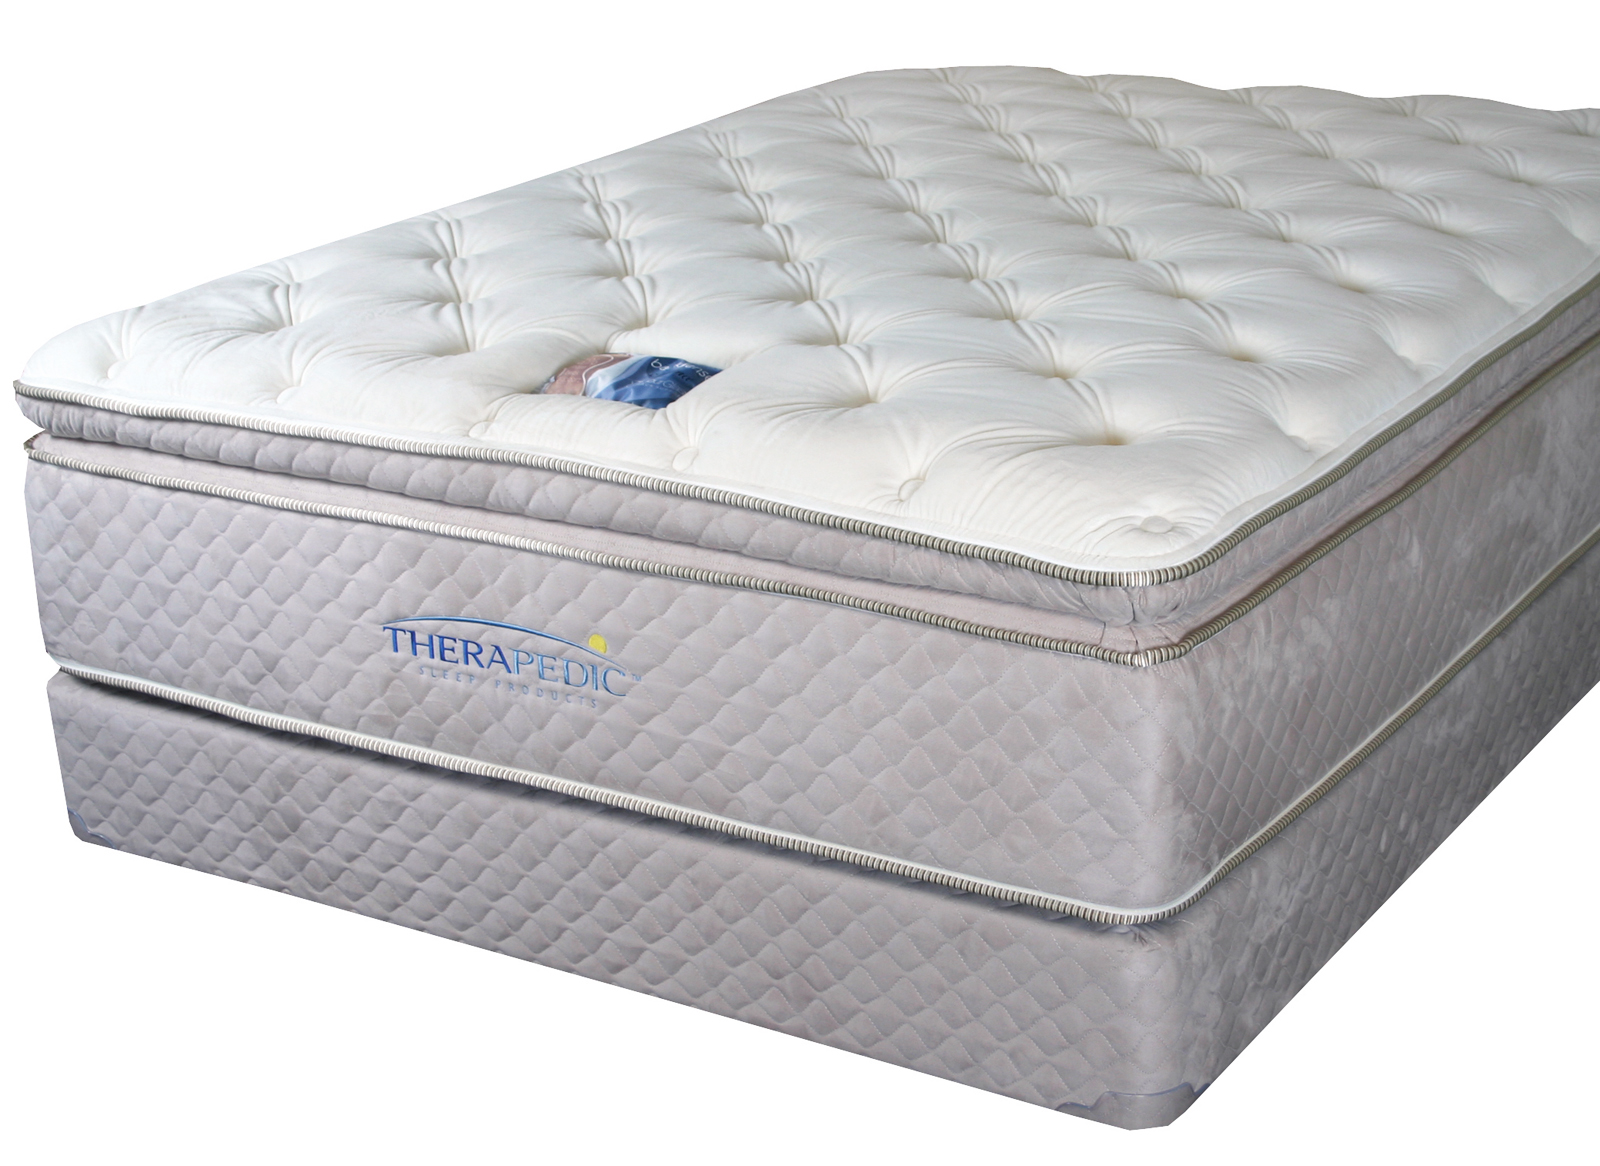 therapedic backsense pillow top mattresses. Black Bedroom Furniture Sets. Home Design Ideas